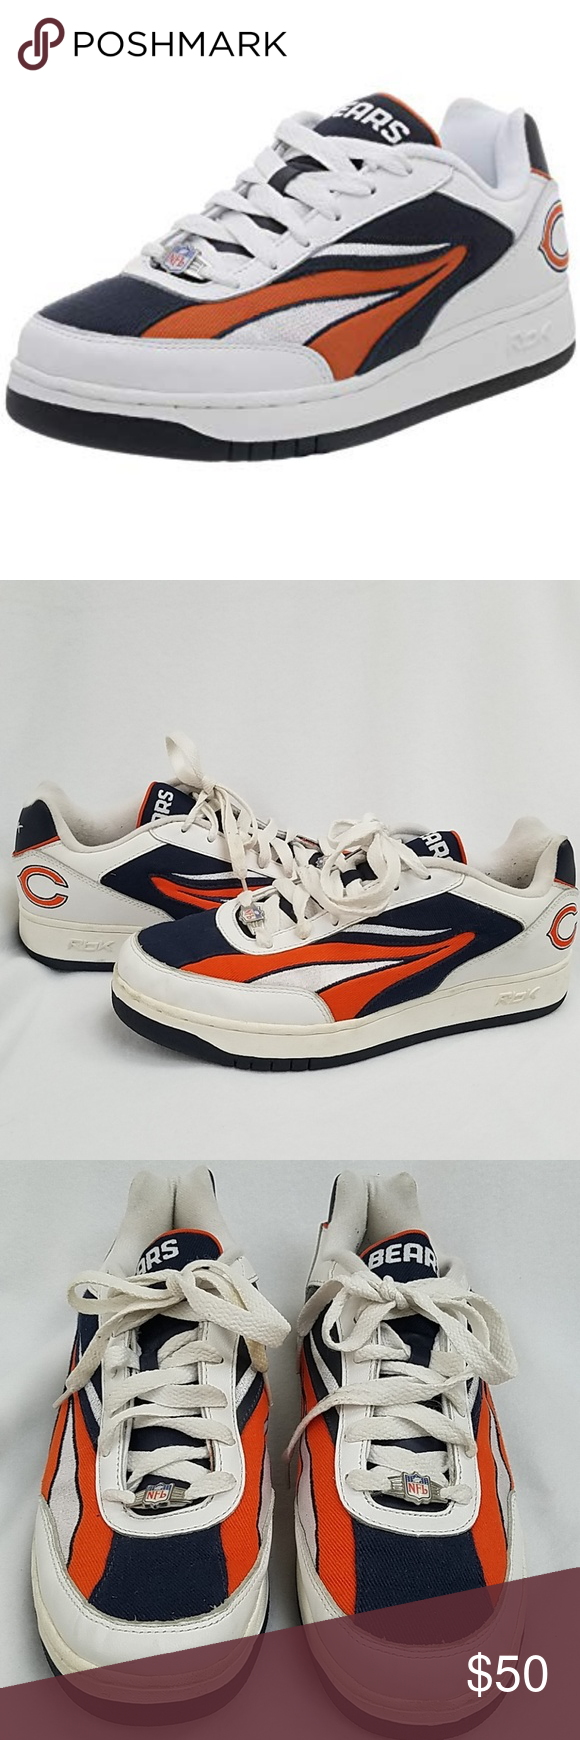 07d71c2291a9 NFL Chicago Bears Reebok Sneakers NFL Chicago Bears Reebok Sneakers Men s  size  11.5 🌟Only worn a handful of times - see pictures for staining on  the ...